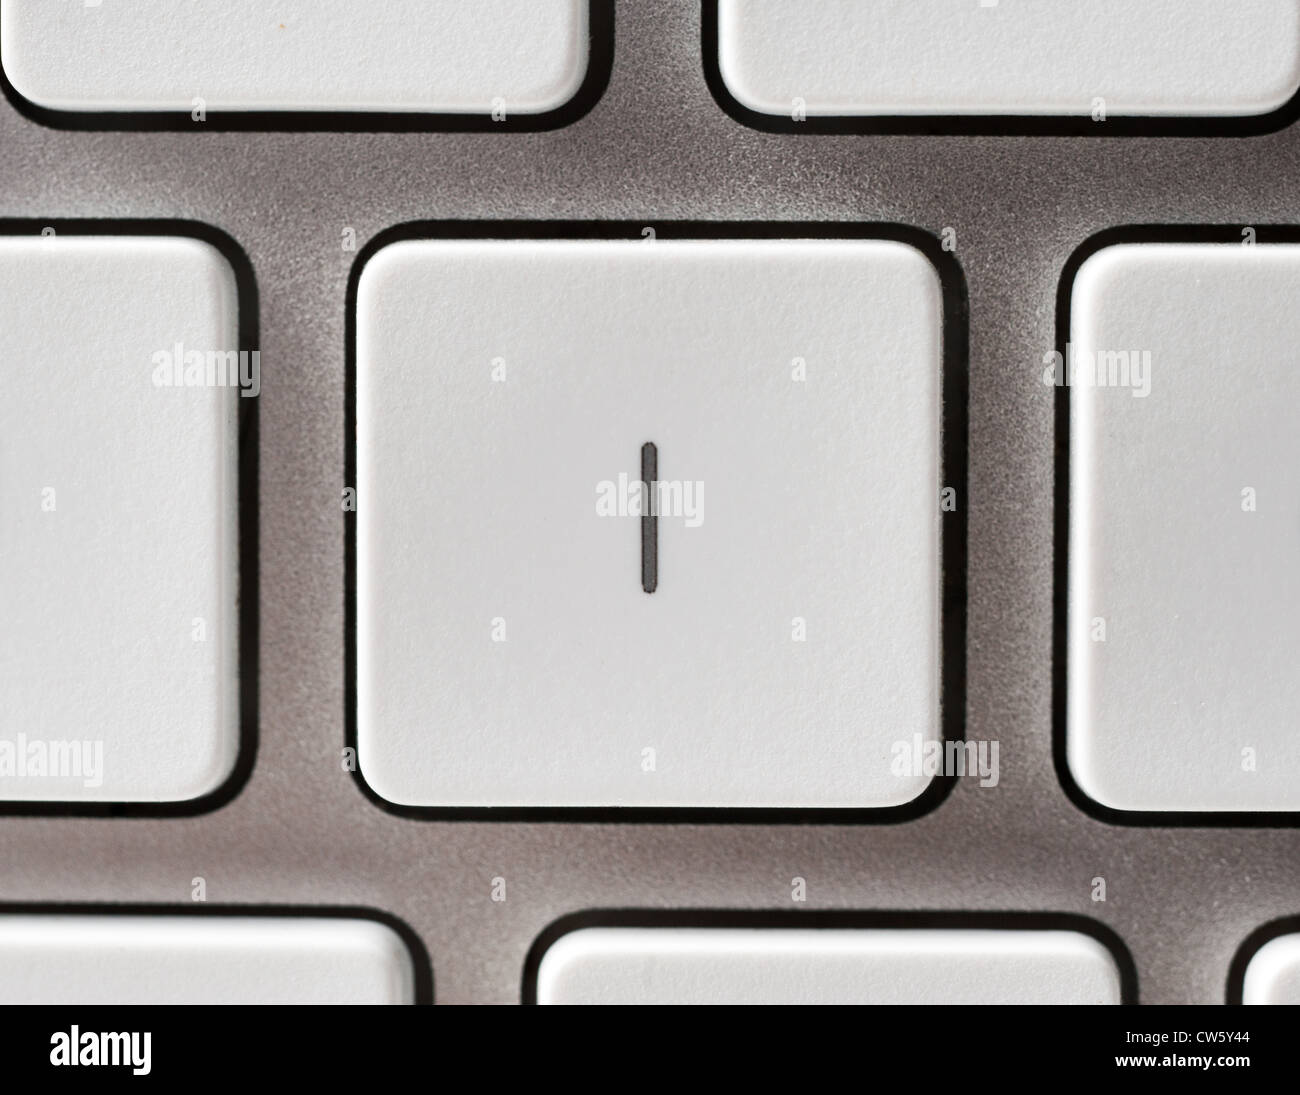 Letter I on an Apple keyboard - Stock Image